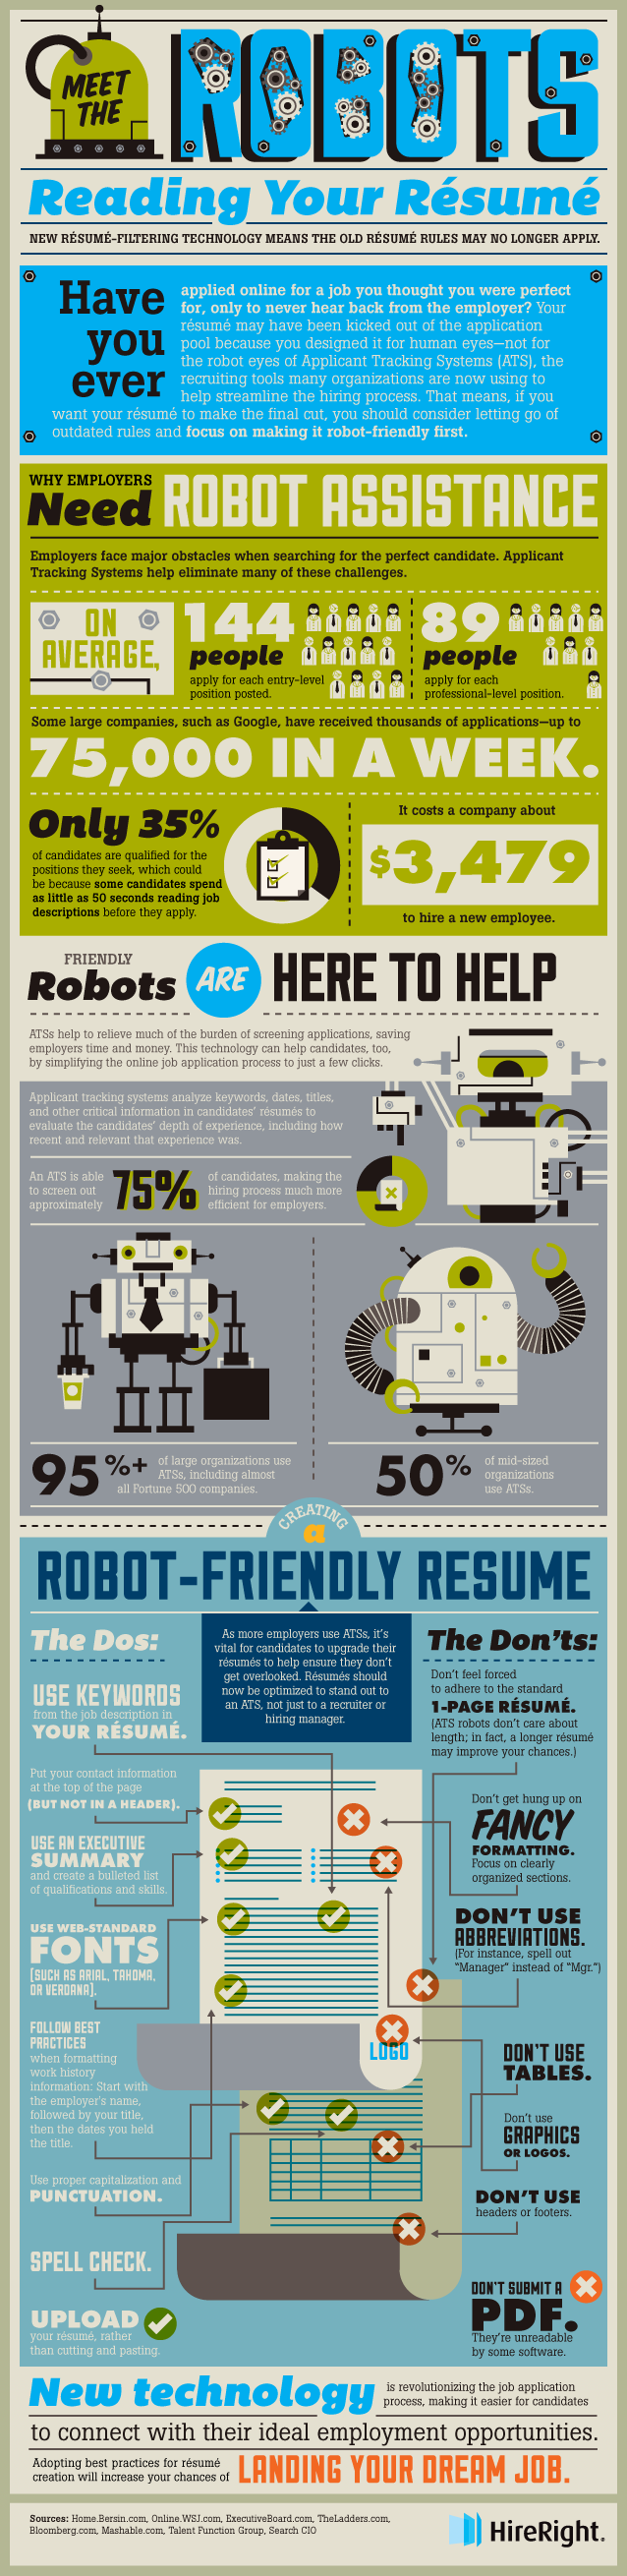 Meet the Robots Reading Your Resume - An infographic by HireRight  What is an Applicant Tracking System (ATS)? robots reading resume ats recruiting infographic